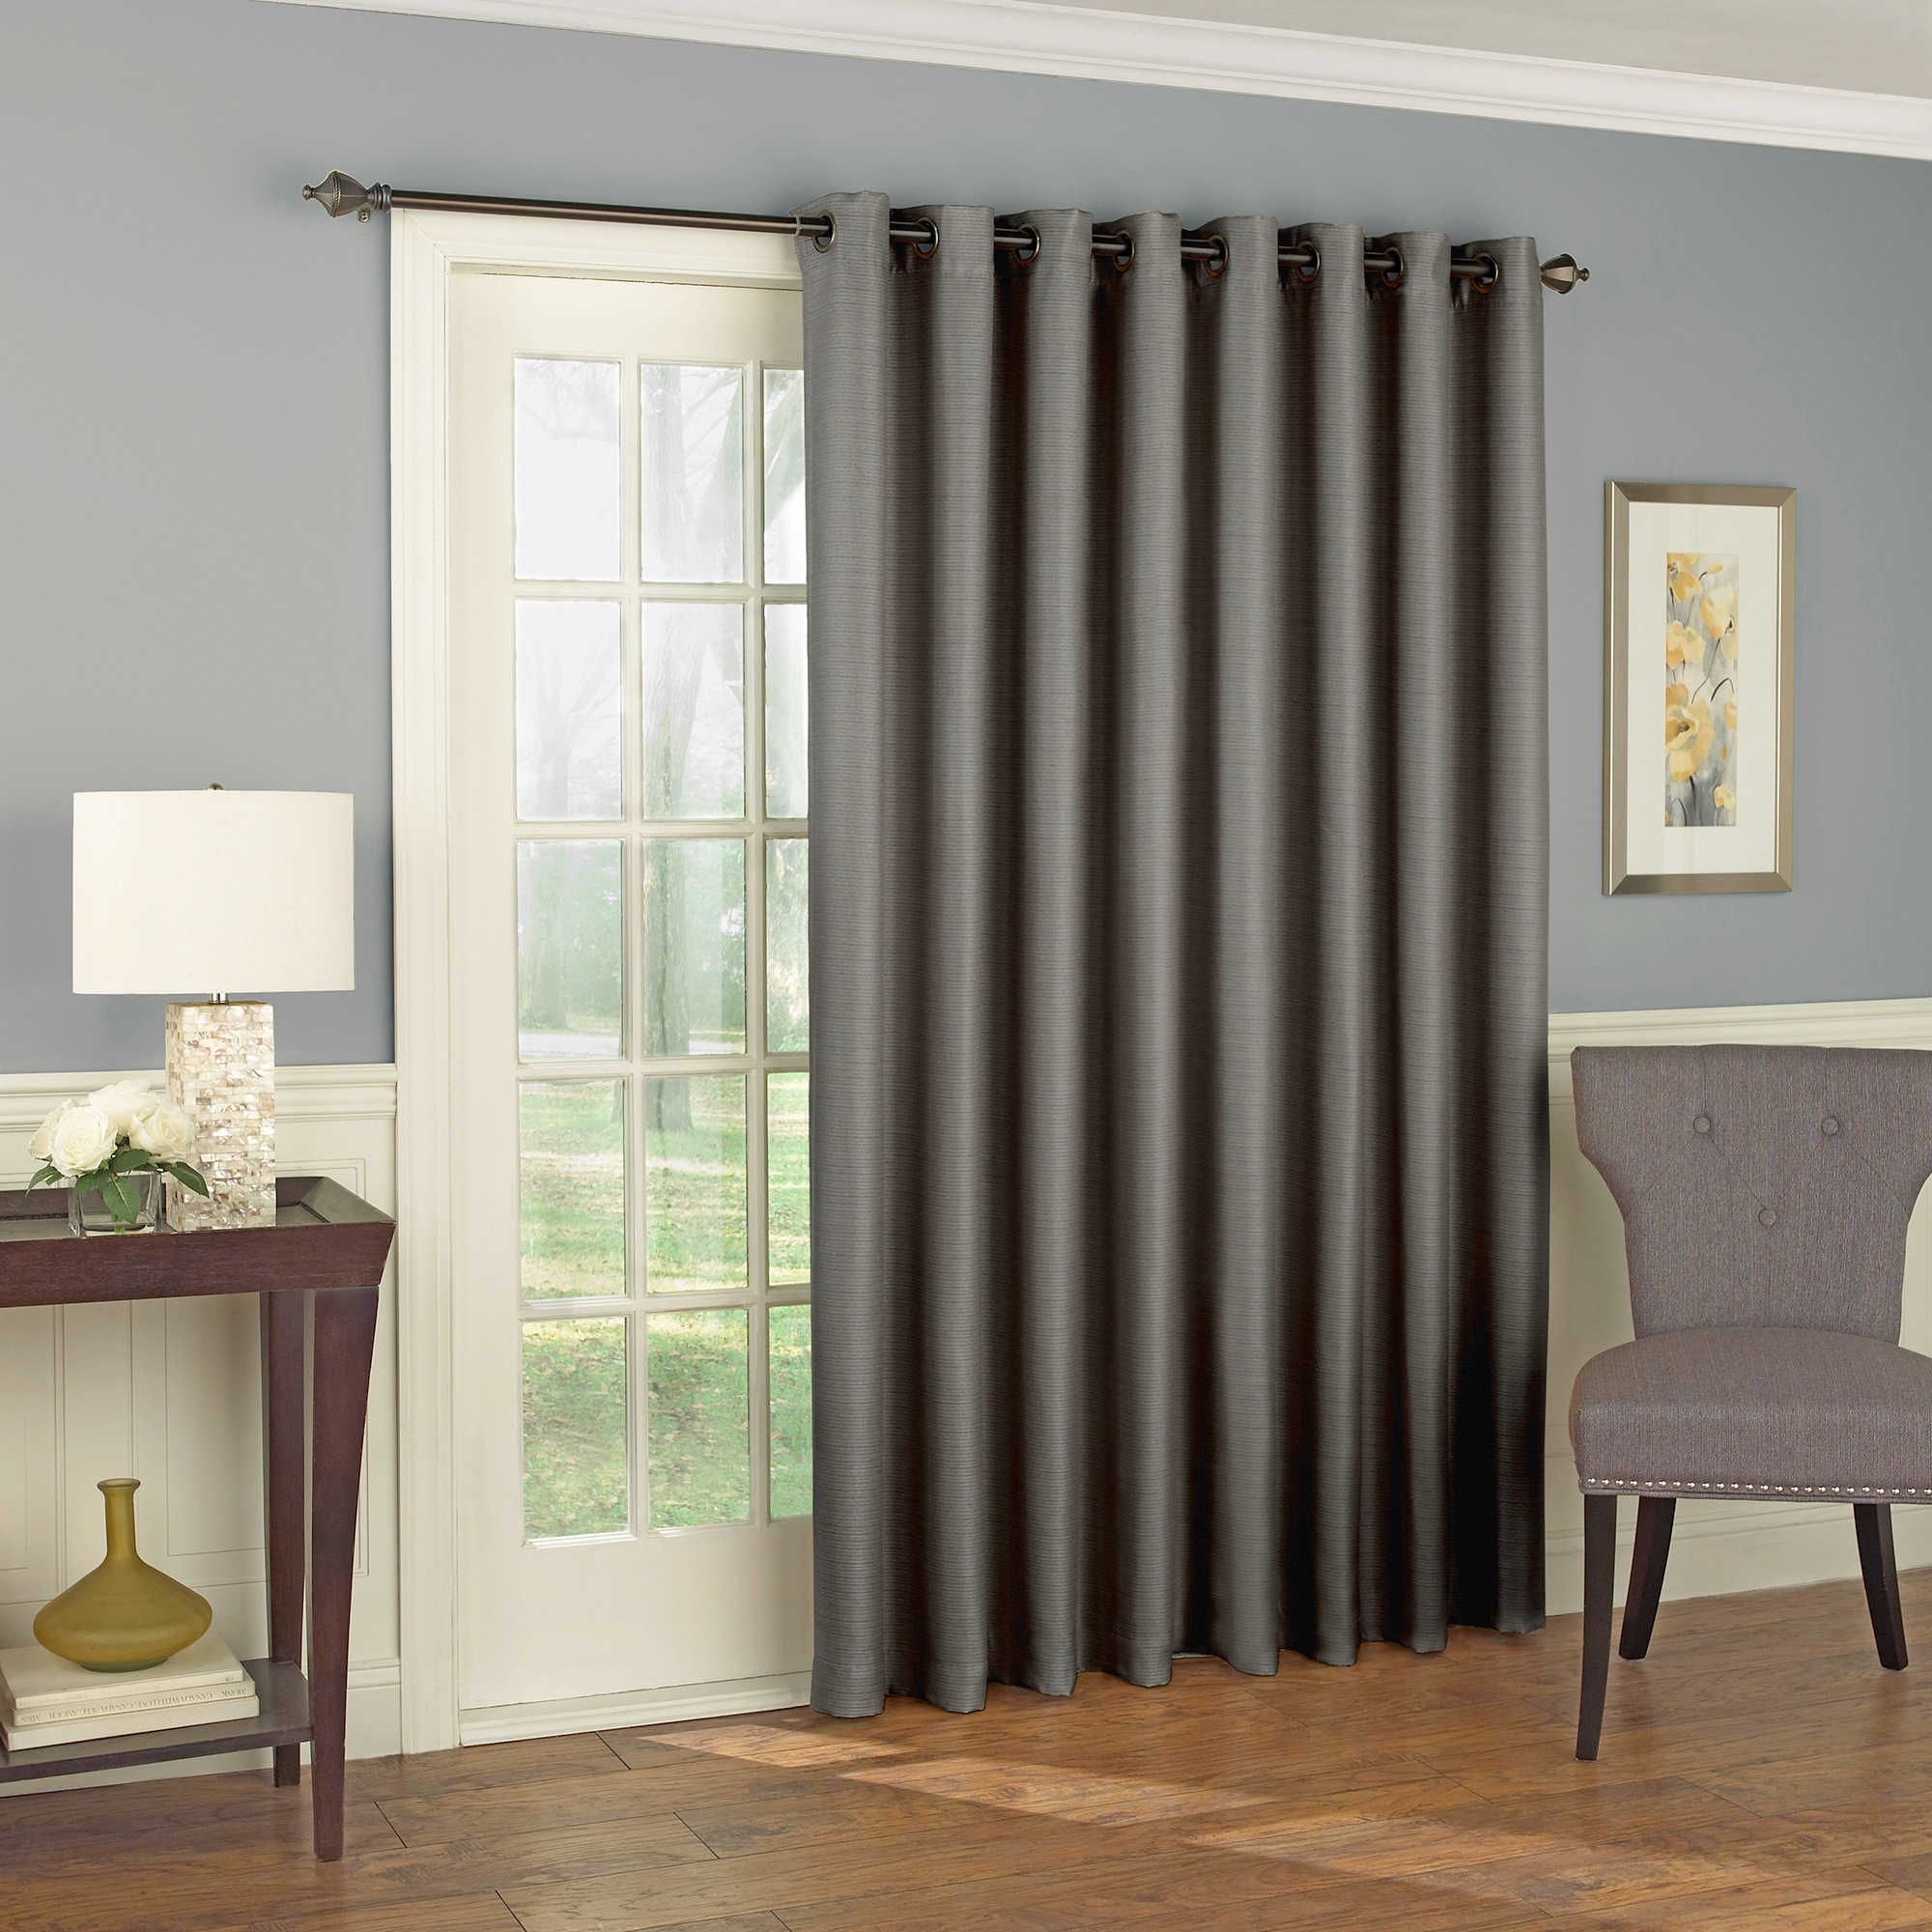 Eclipse Bryson Grommet Room Darkening Patio Door Curtain Panel